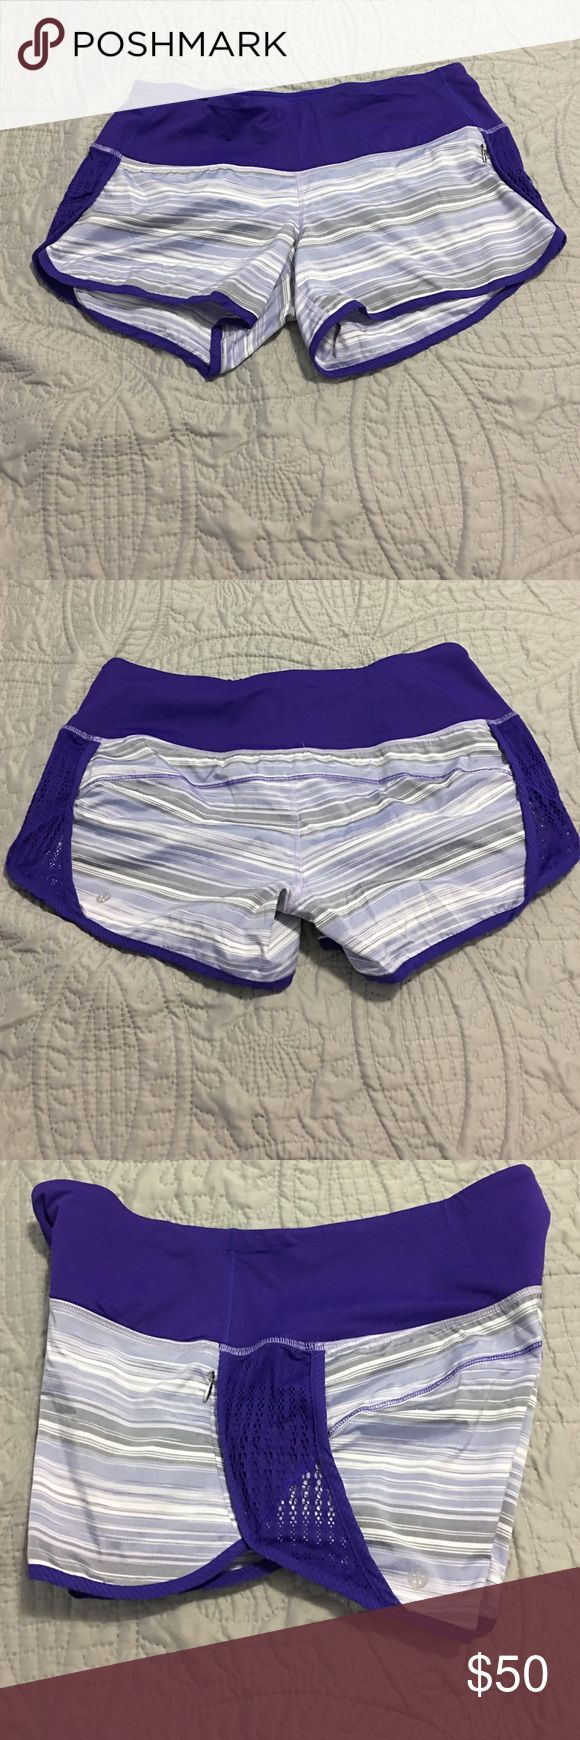 Lululemon Sun Sprinter Short Excellent condition! Worn only a couple of times. Purple with multi colored stripes. Purple lace detail down sides. Zipper pocket on side and key holder at waistband. No lining. Discontinued Lulu style. lululemon athletica Shorts